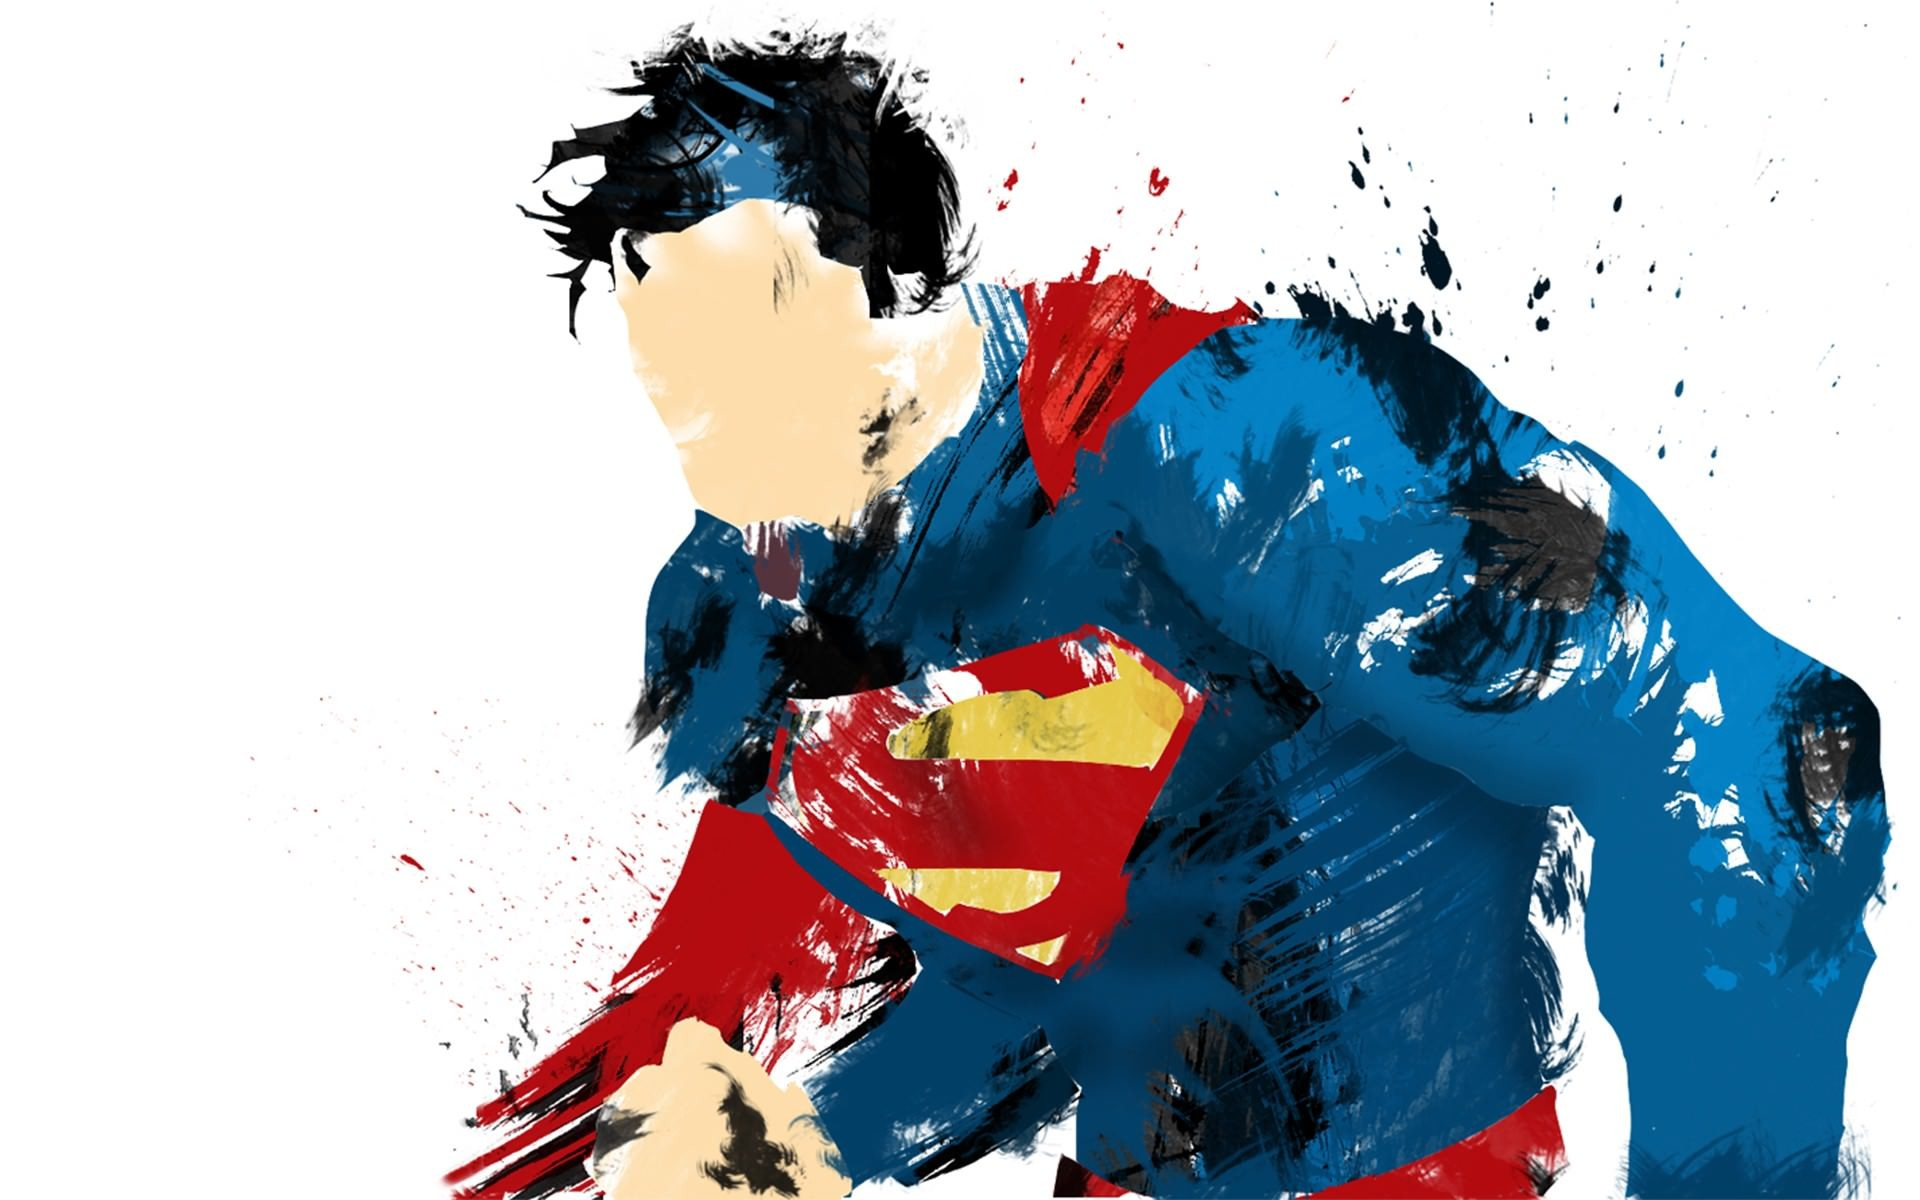 Superman Man of Steel Painted Wallpaper